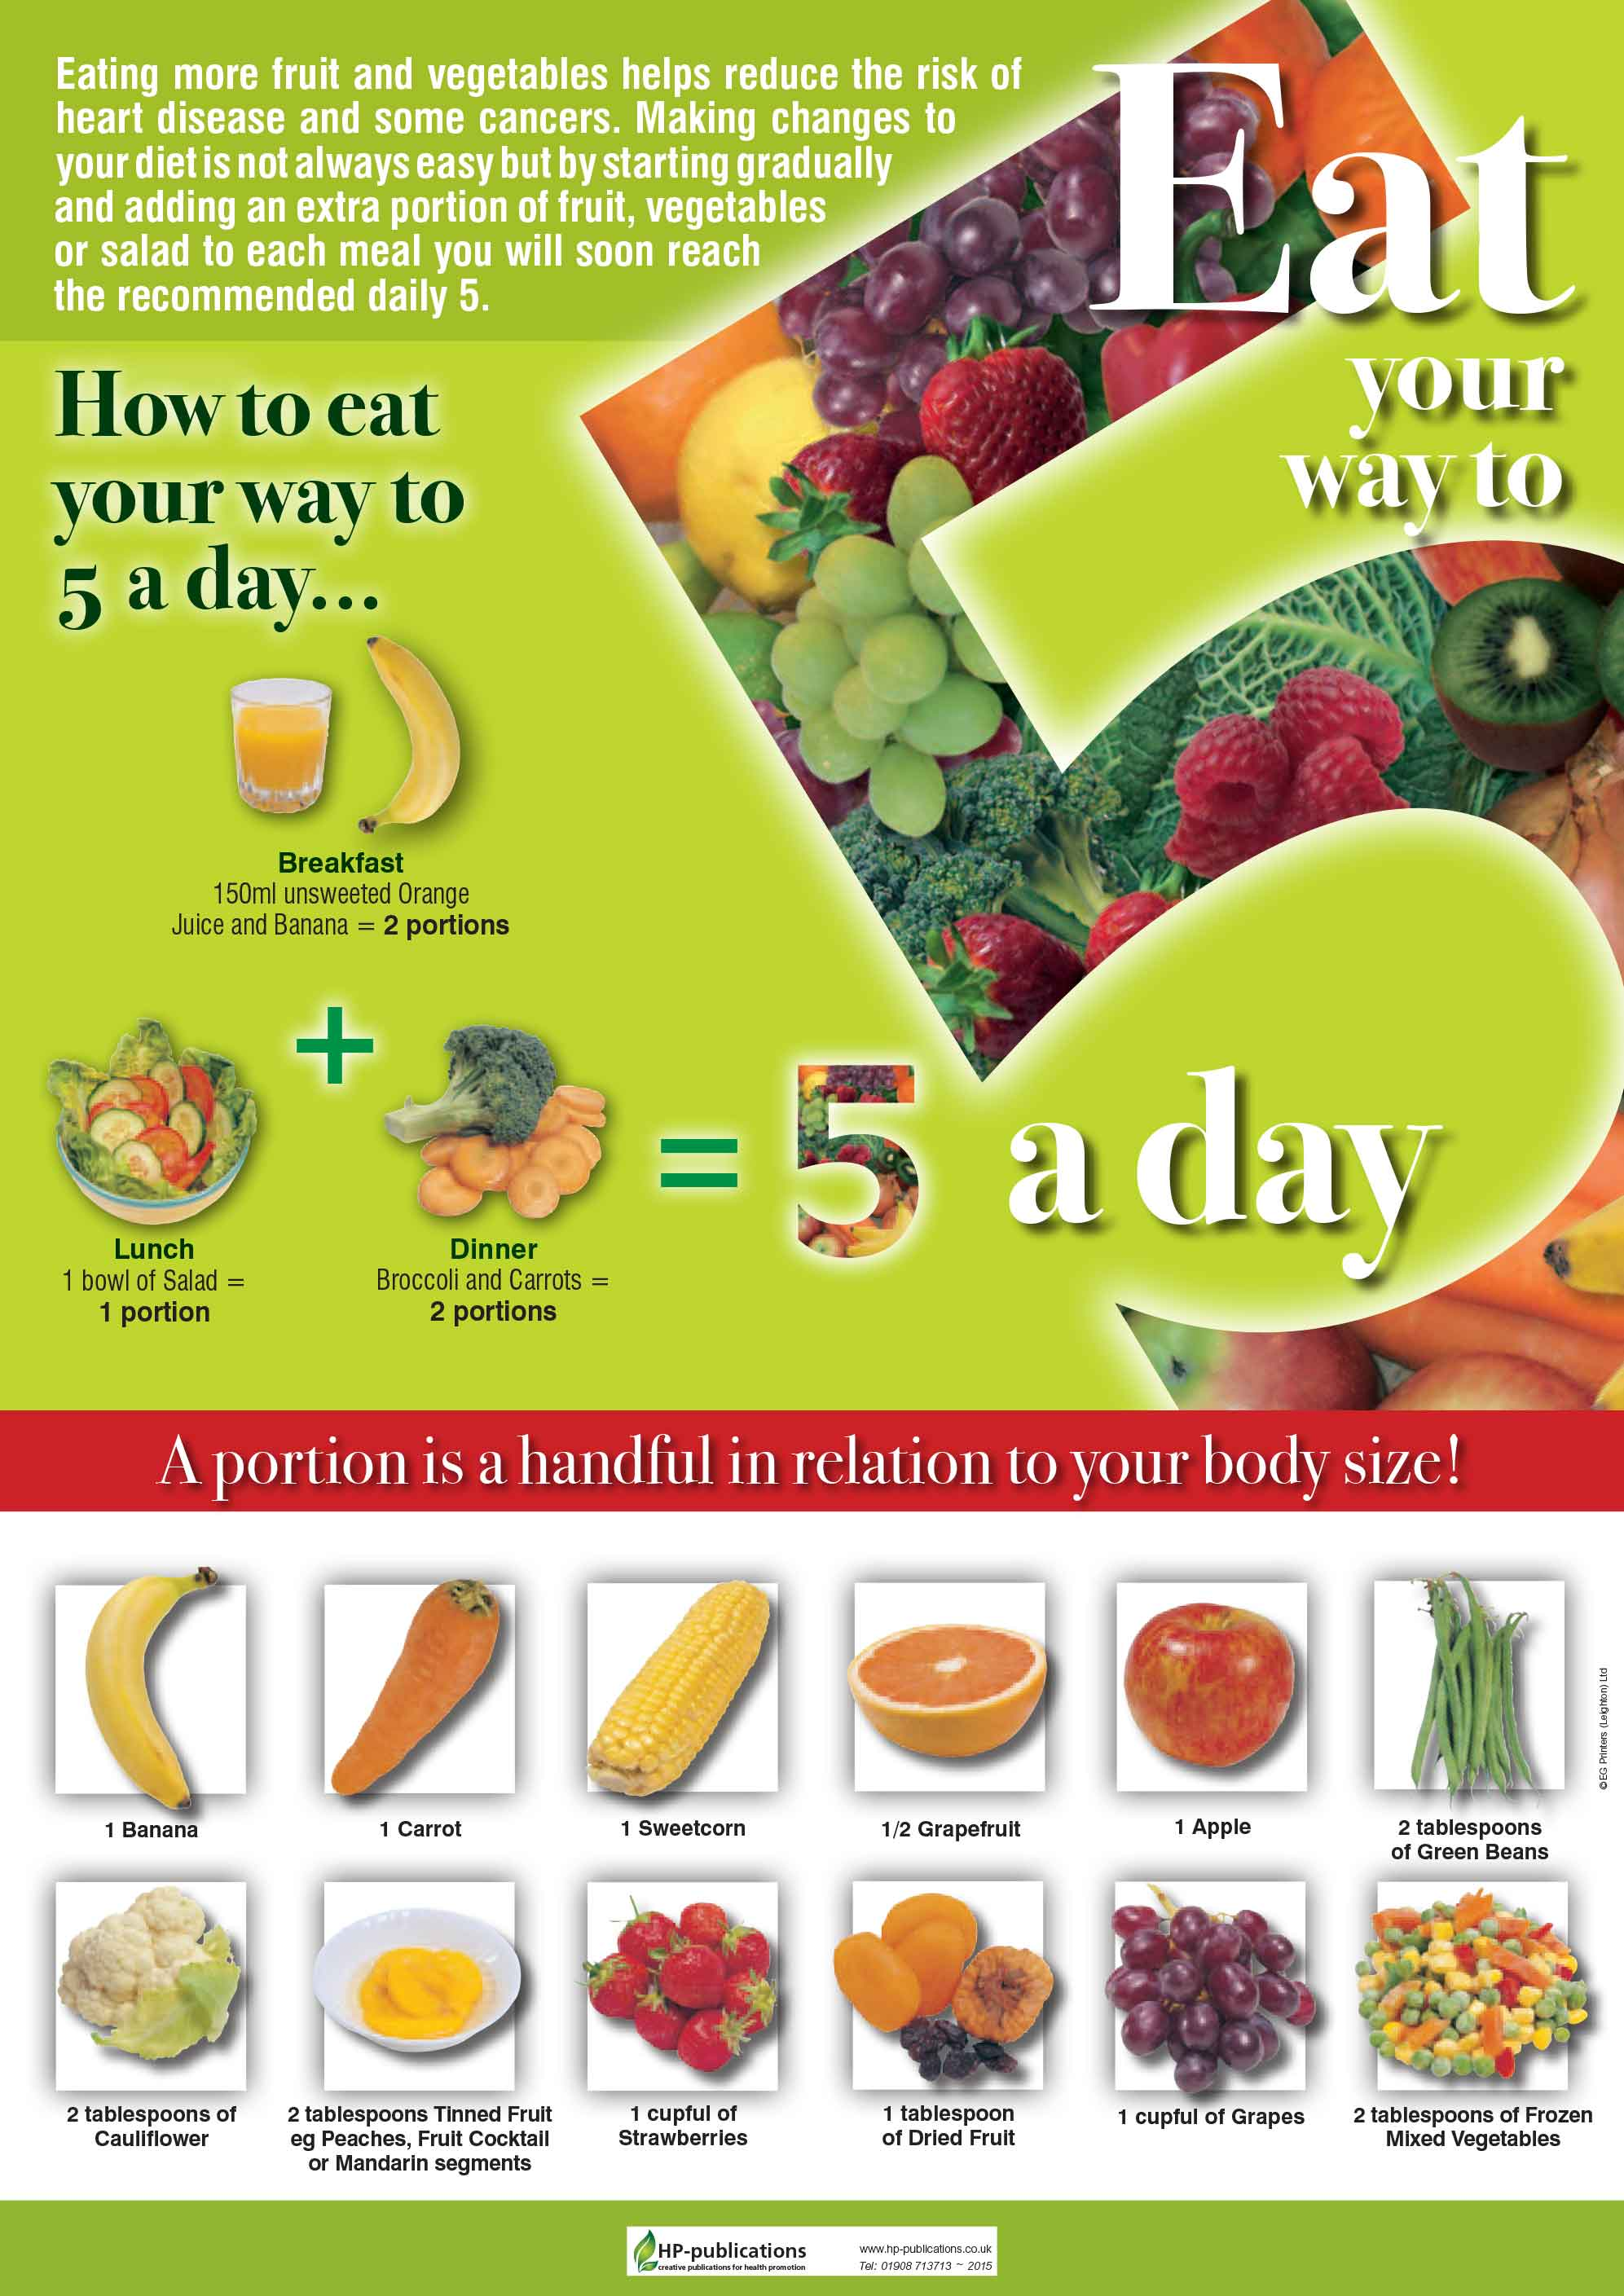 Eat your way to 5 a day